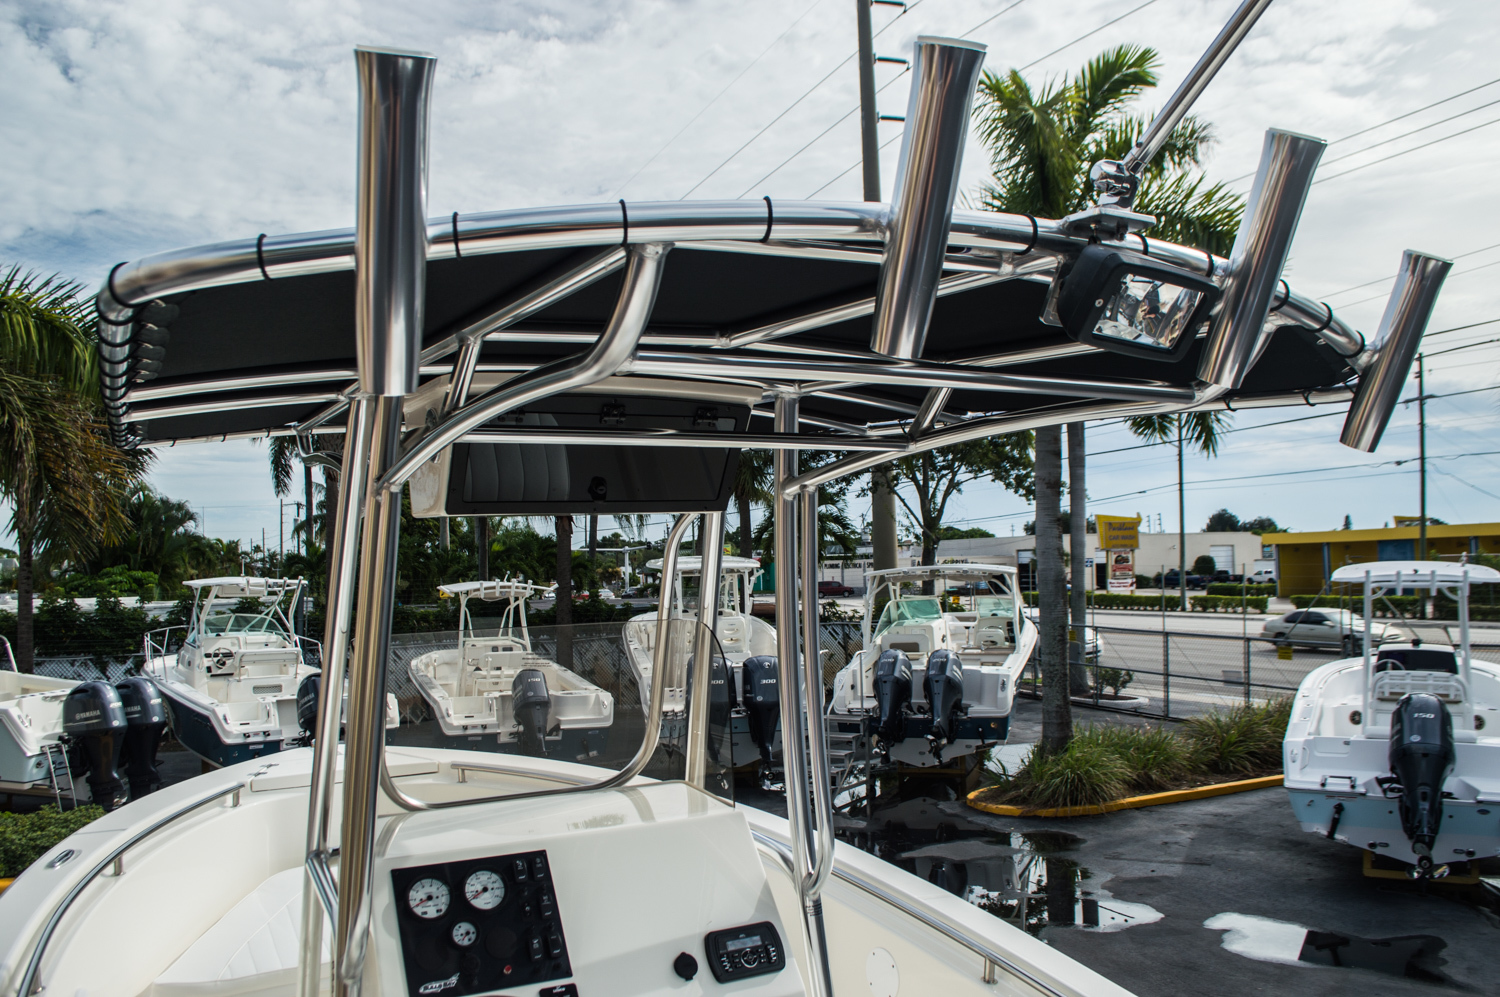 Thumbnail 10 for New 2016 Bulls Bay 230 CC Center Console boat for sale in West Palm Beach, FL